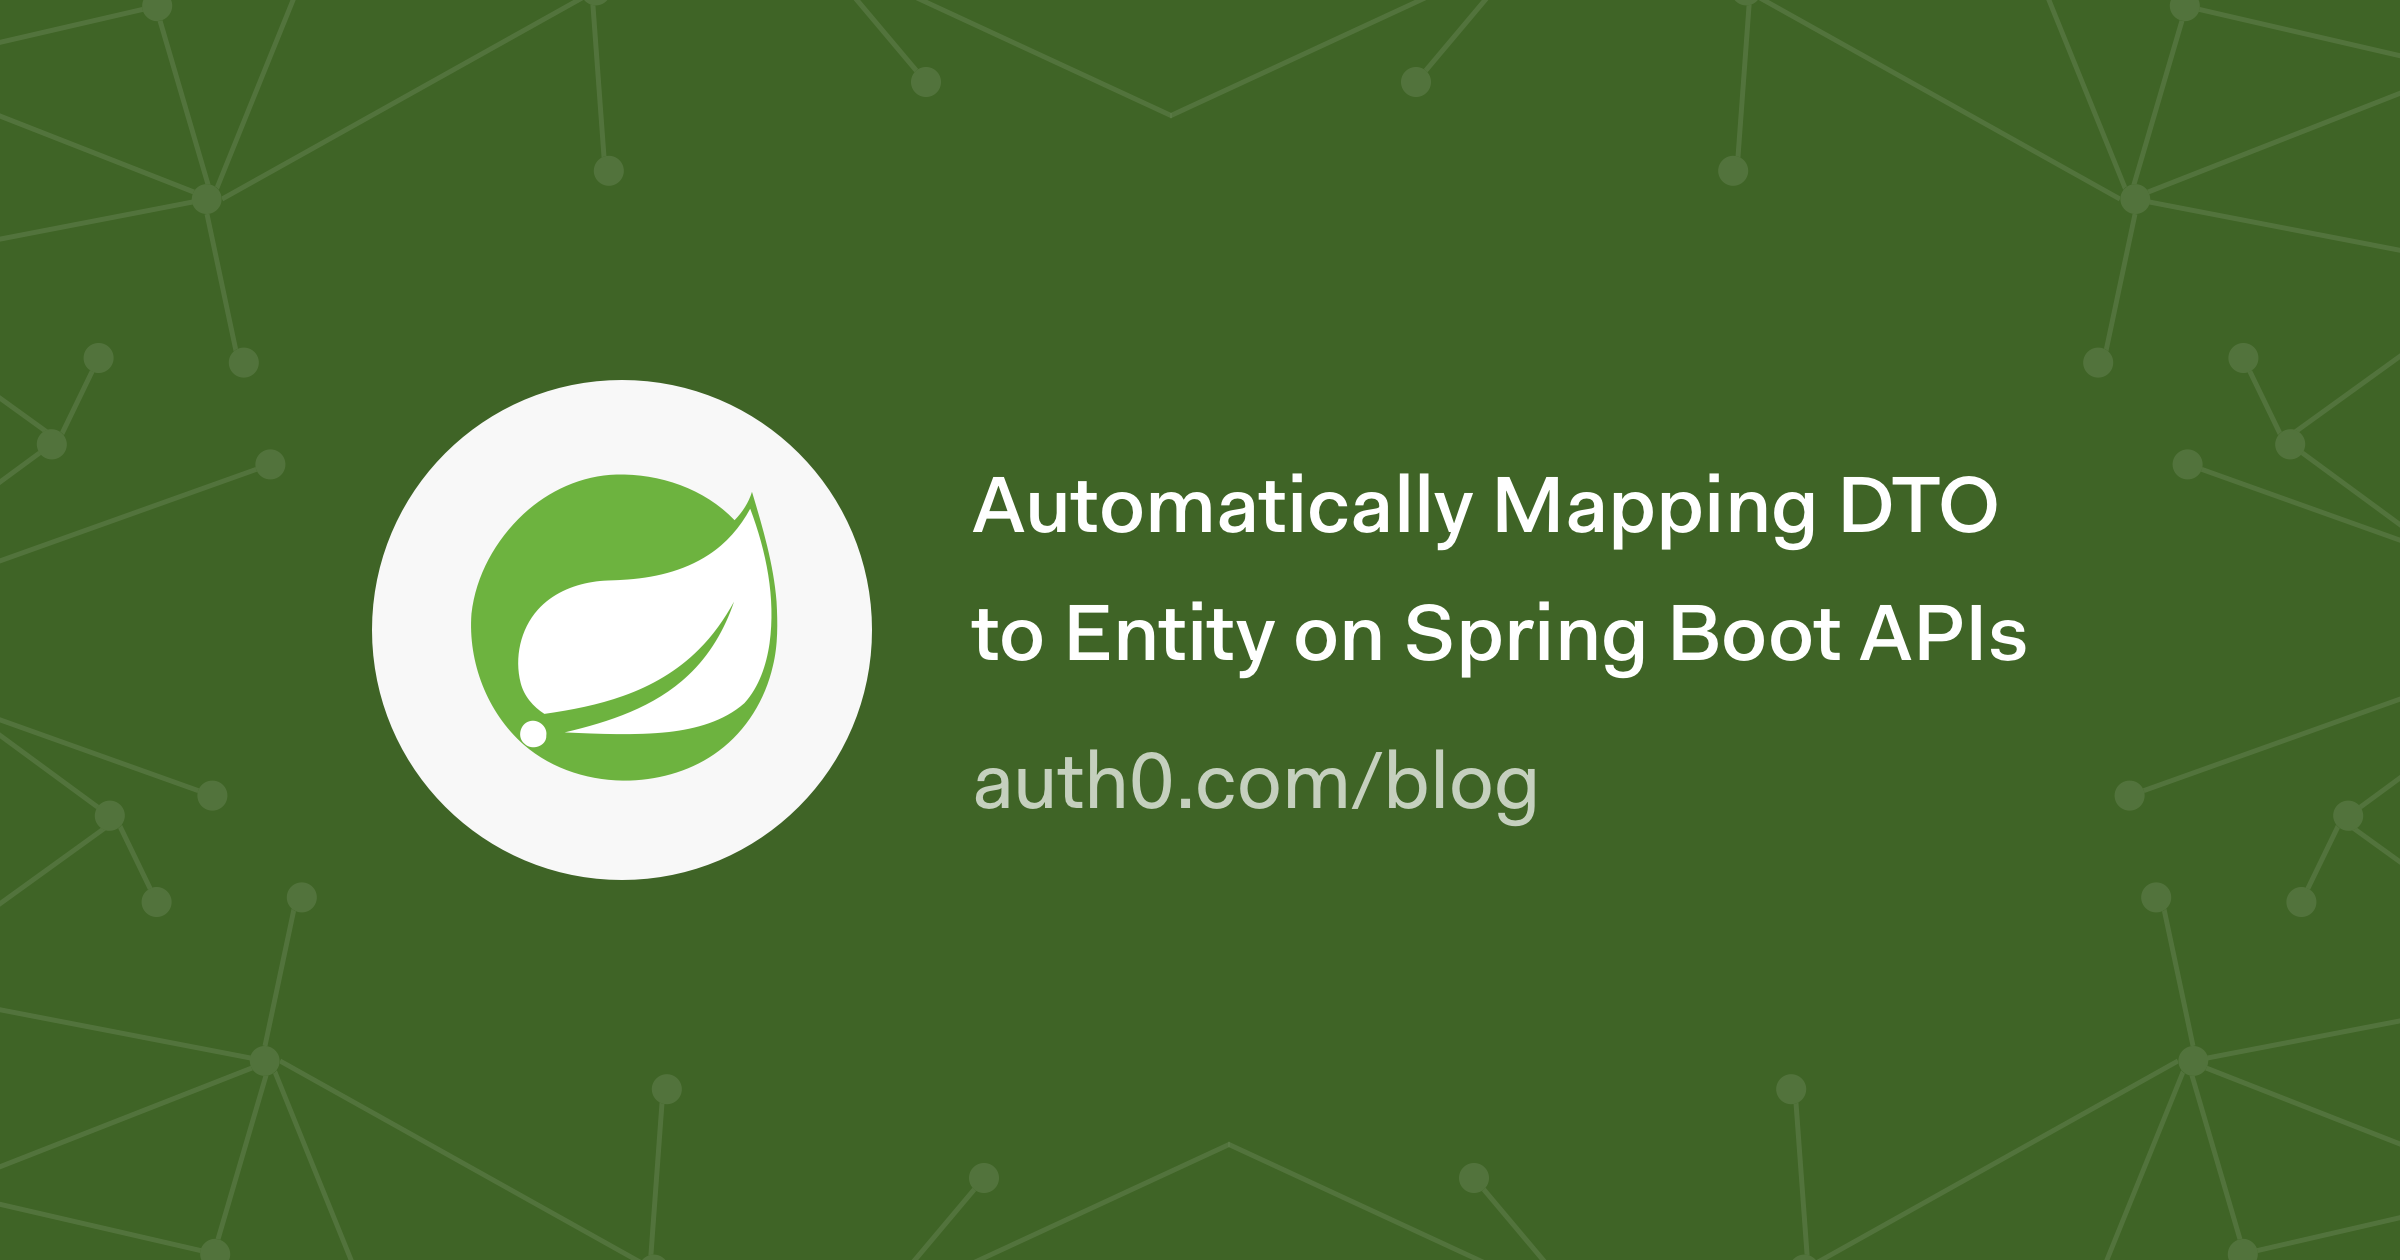 Automatically Mapping DTO to Entity on Spring Boot APIs